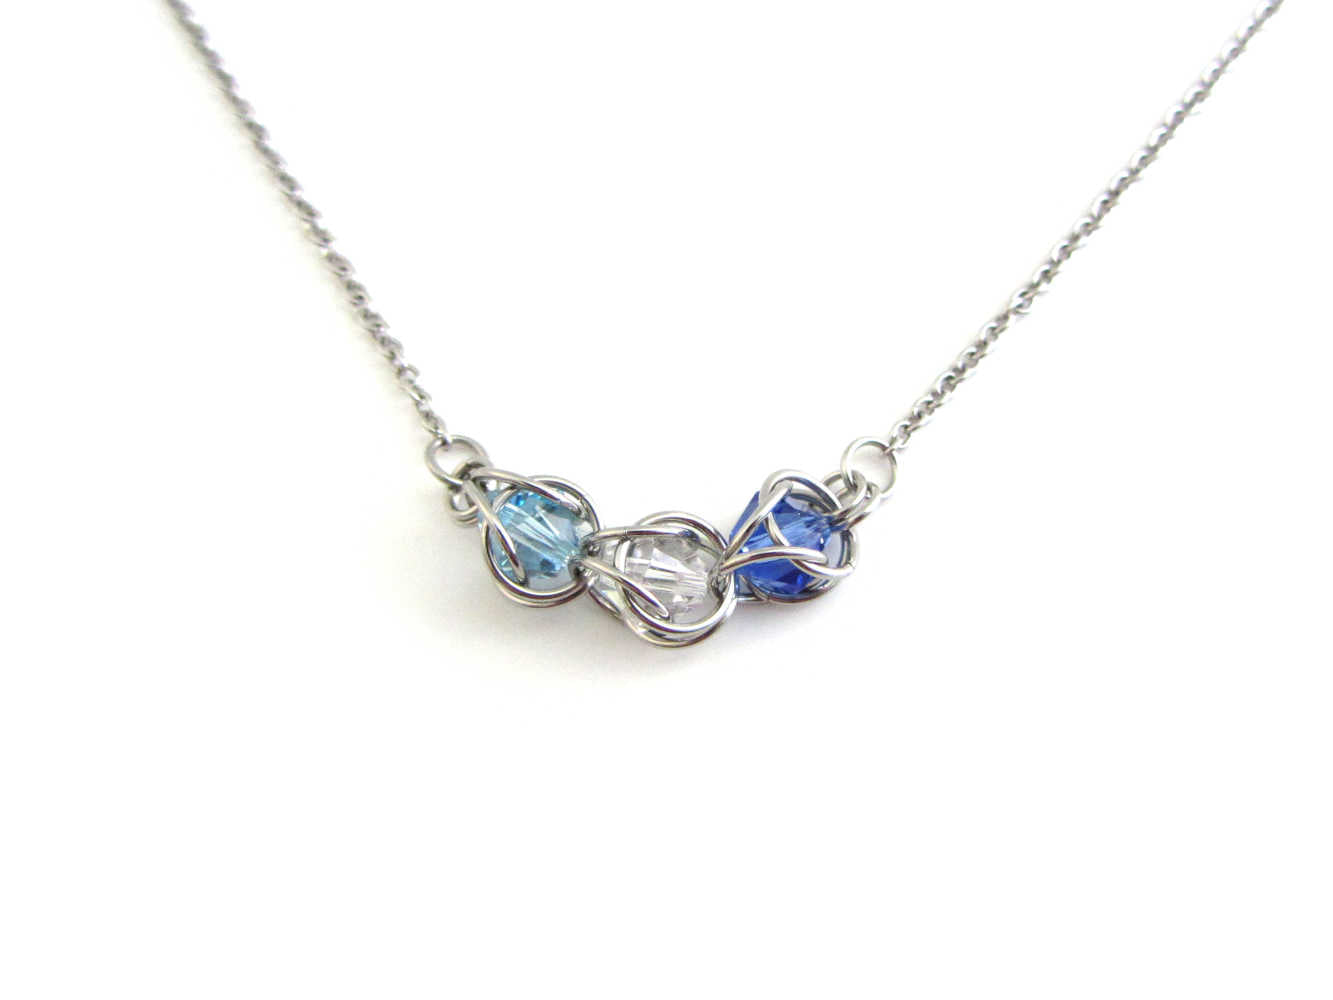 catpured light blue, clear and dark blue crystal beads chainmaille section on a stainless steel chain